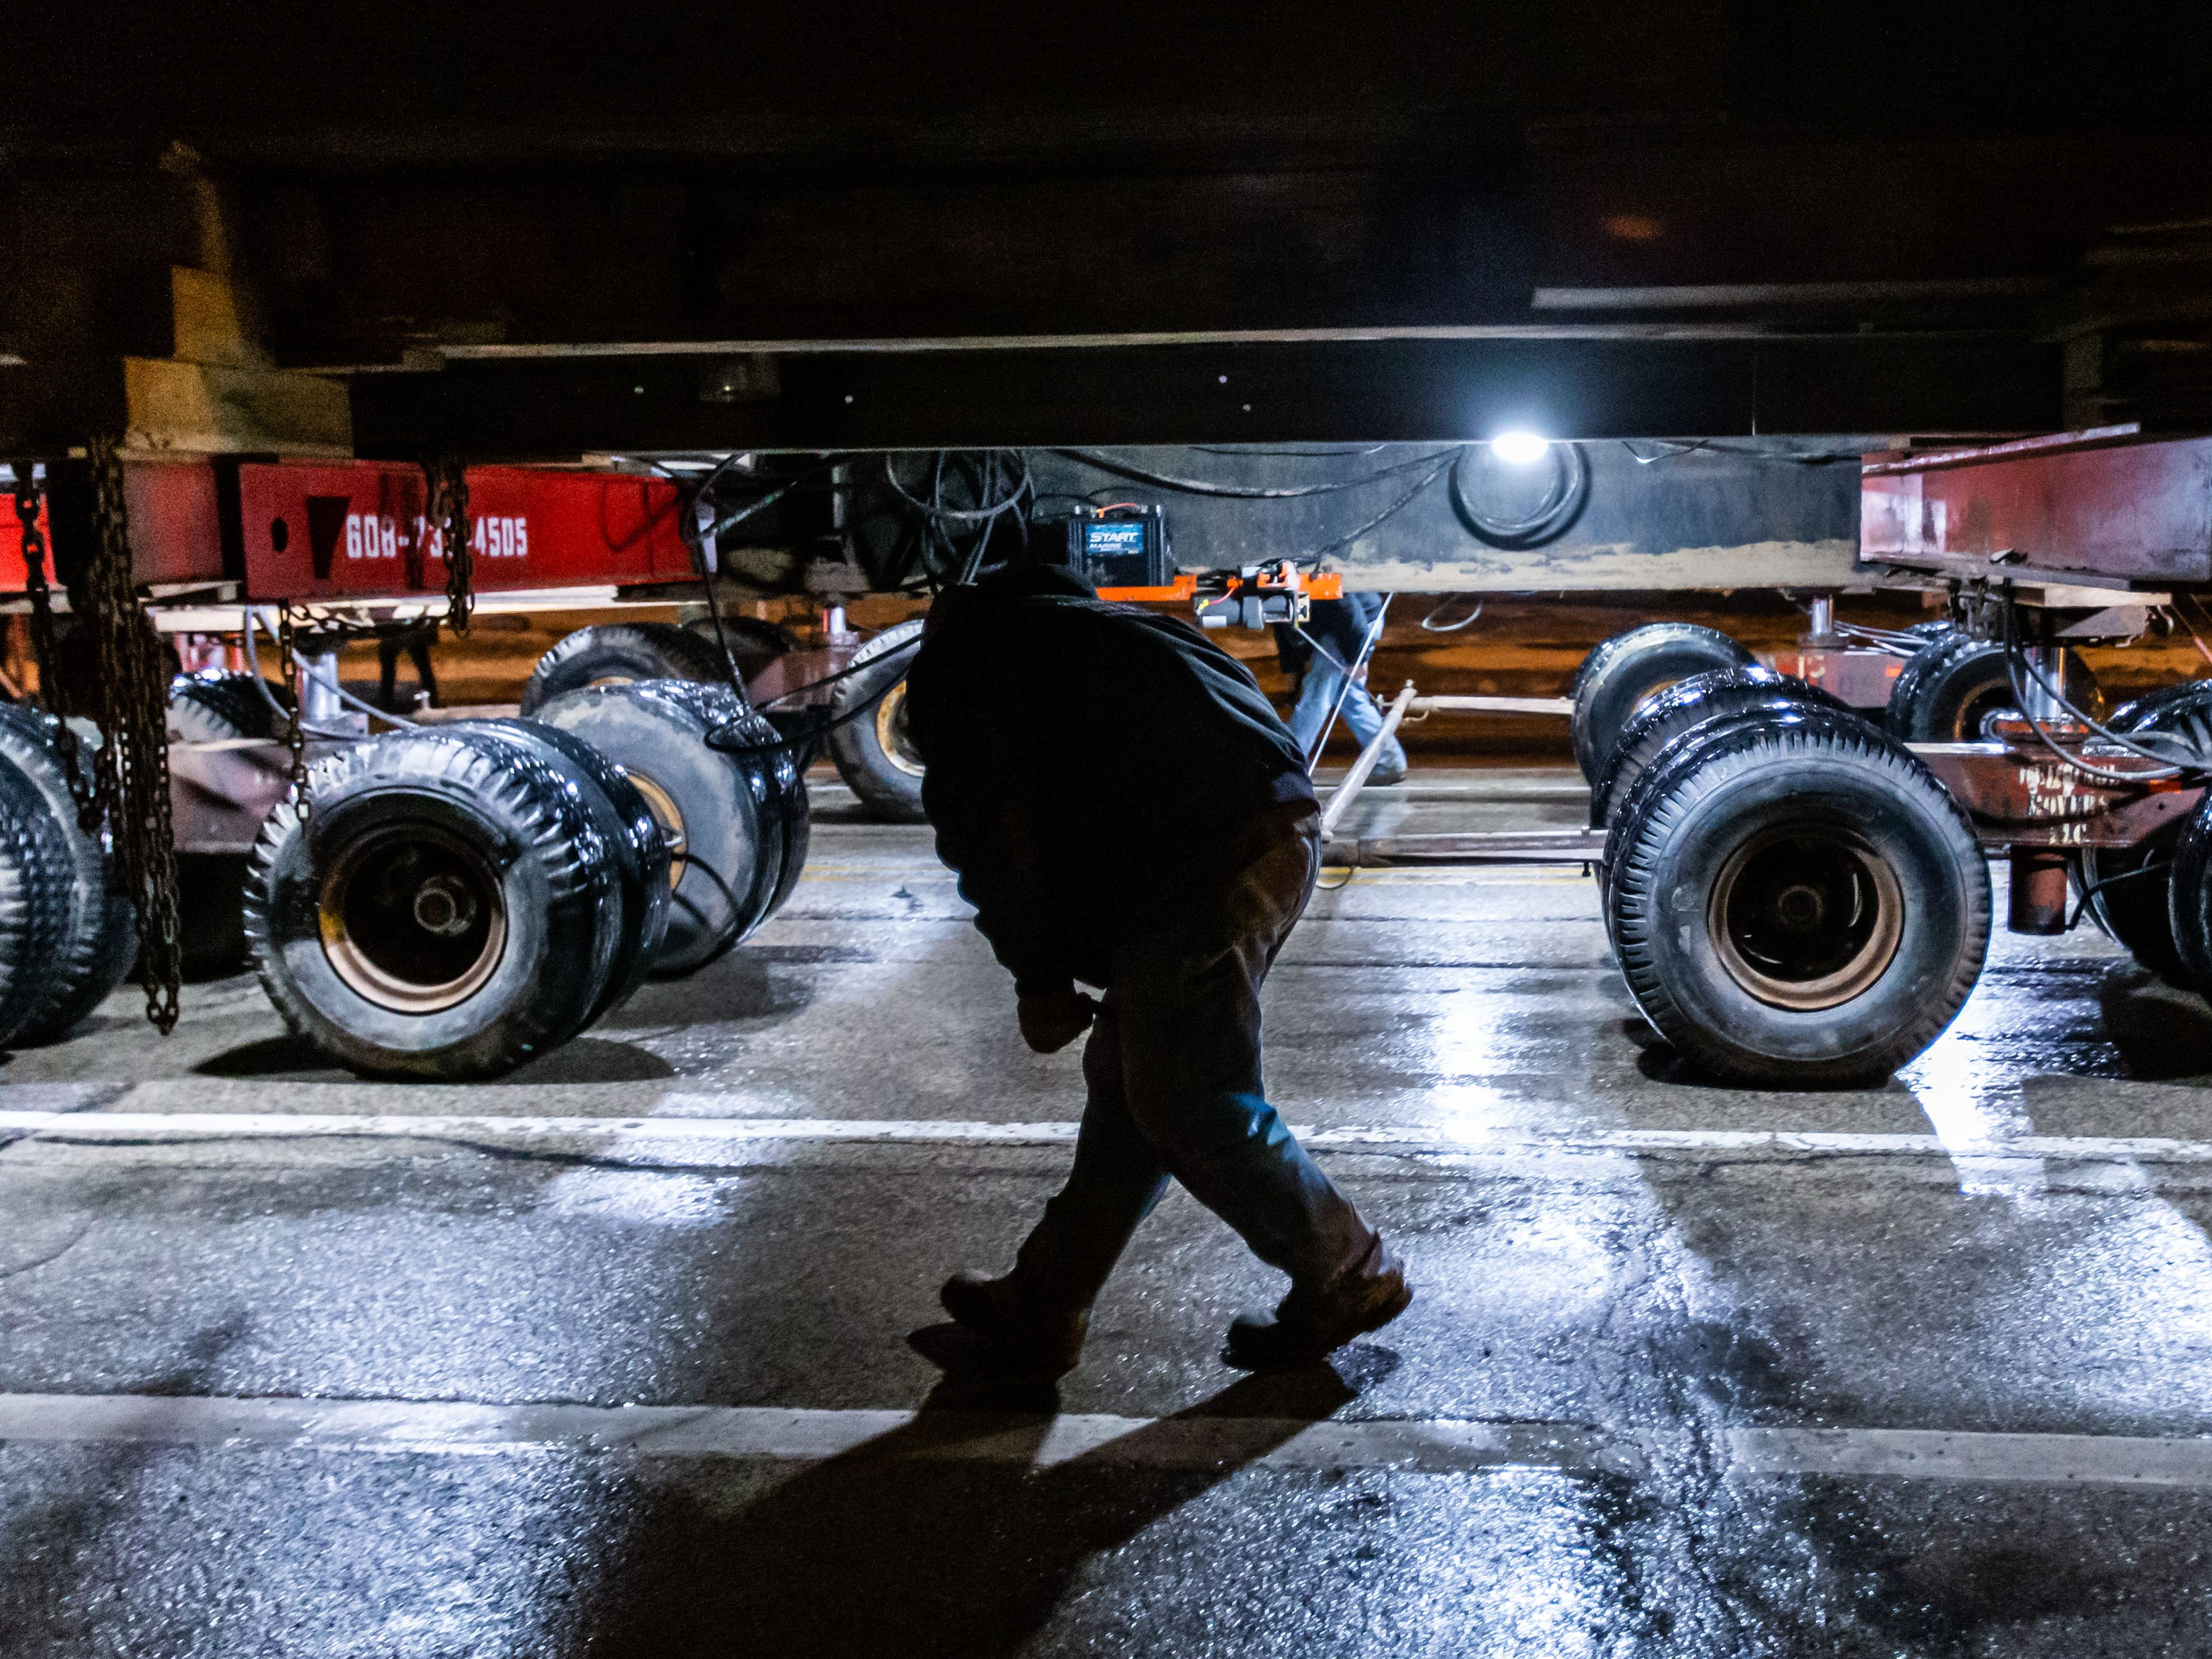 """Employees from Heritage Movers keep a close watch on the """"Tosa Log Cabin"""" as it rolls down N. Wauwatosa Ave. on it's journey to 6404 W. North Ave. on Wednesday evening, March 13, 2019. The cabin is being moved to make way for a three-story apartment complex called the Gallatin Apartments."""